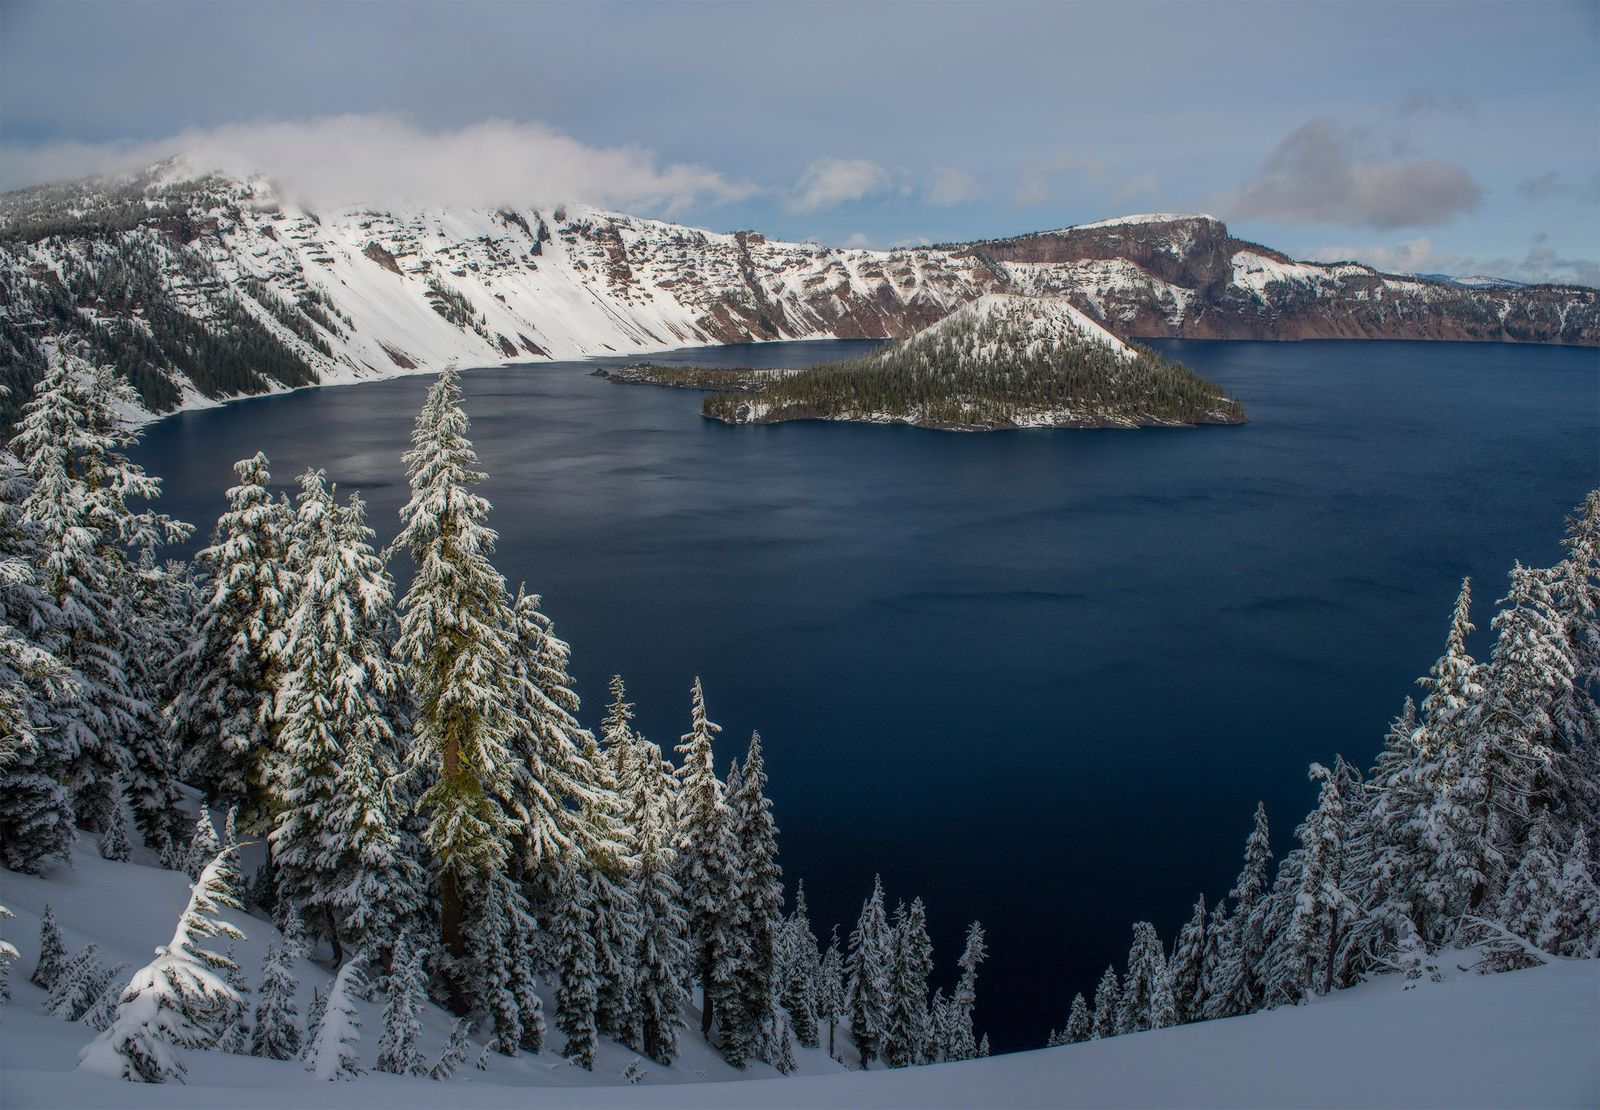 Crater Lake National Park - Photo by Tristan Fortsch on January 16, 2018.